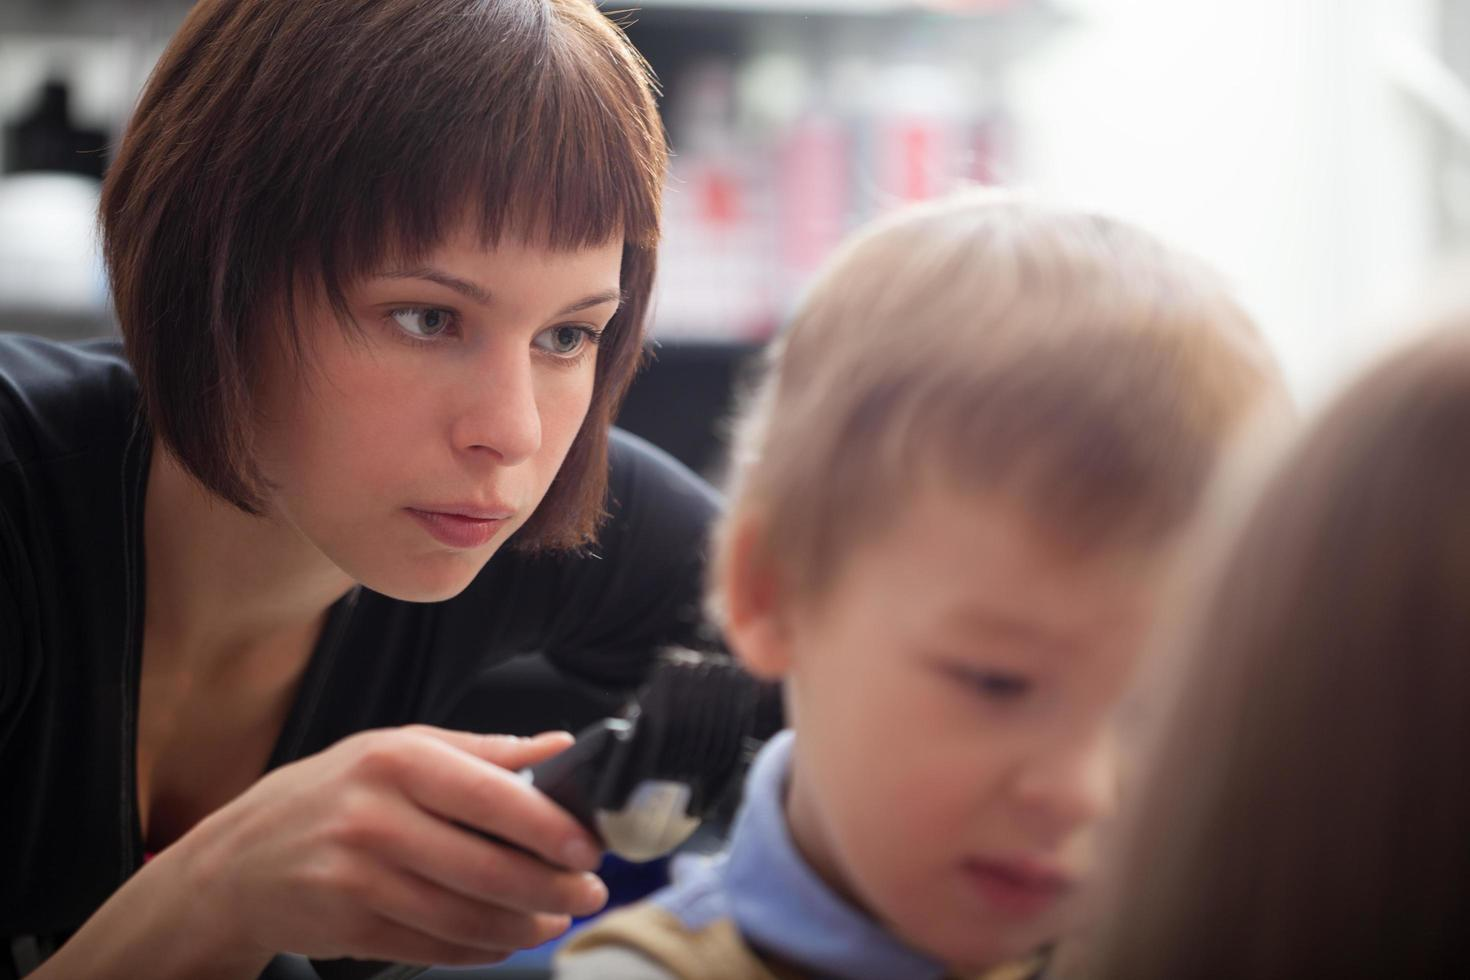 Hairstylist cutting a young boy's hair photo